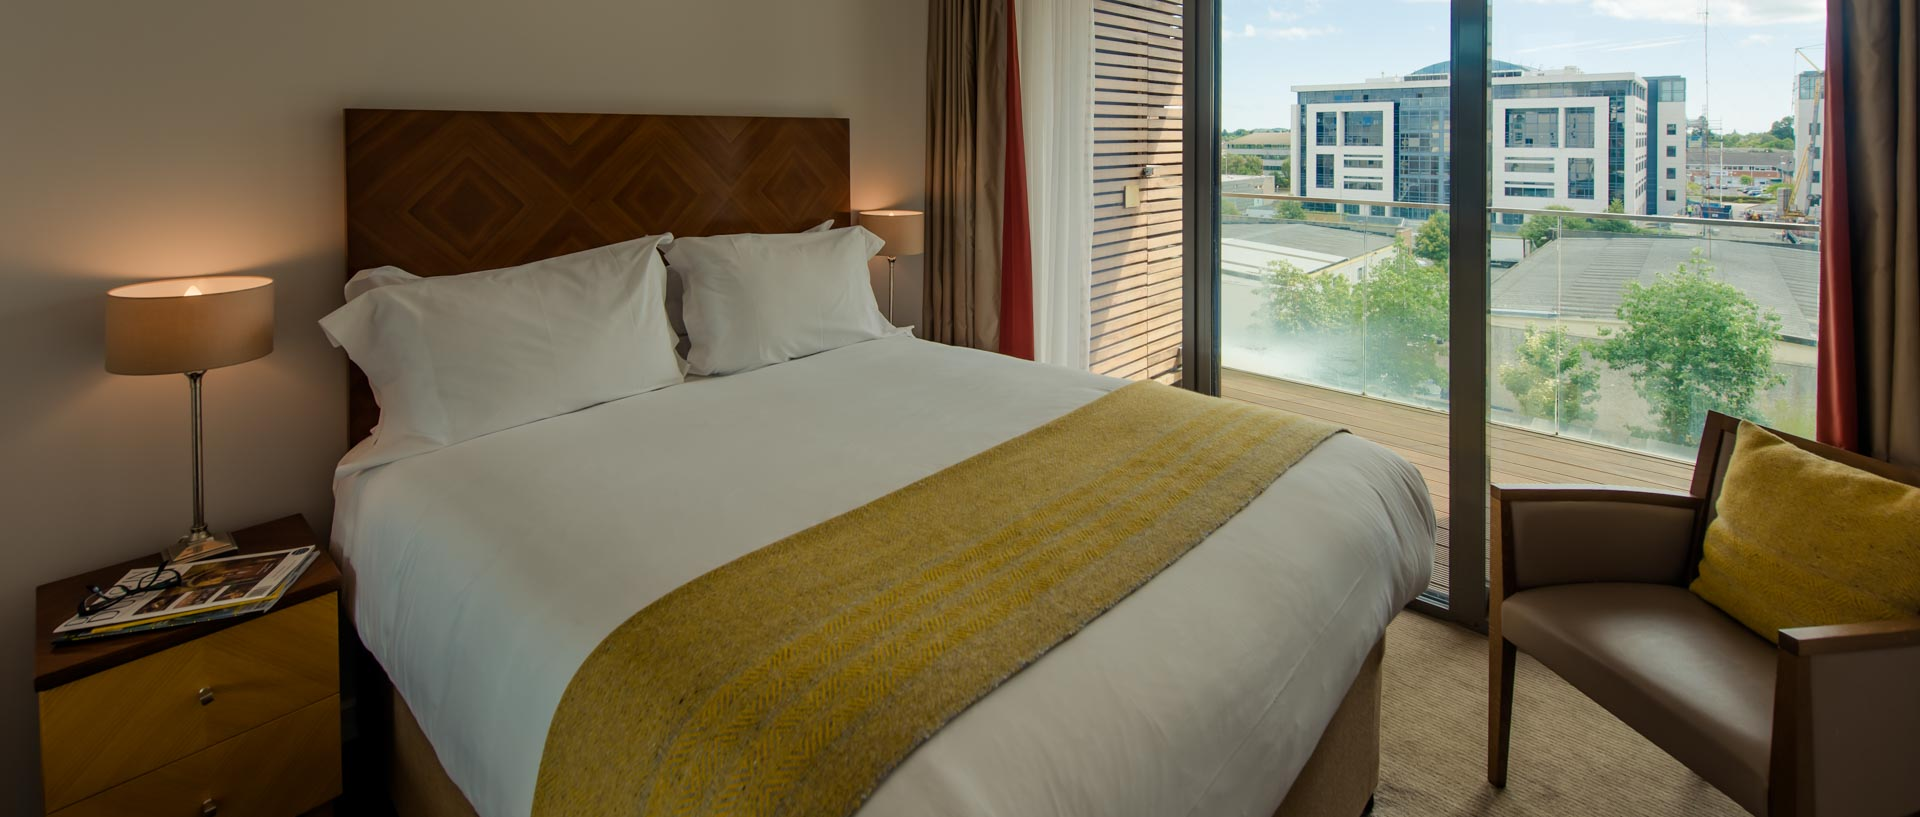 PREMIER SUITES Dublin Sandyford twin beds and view